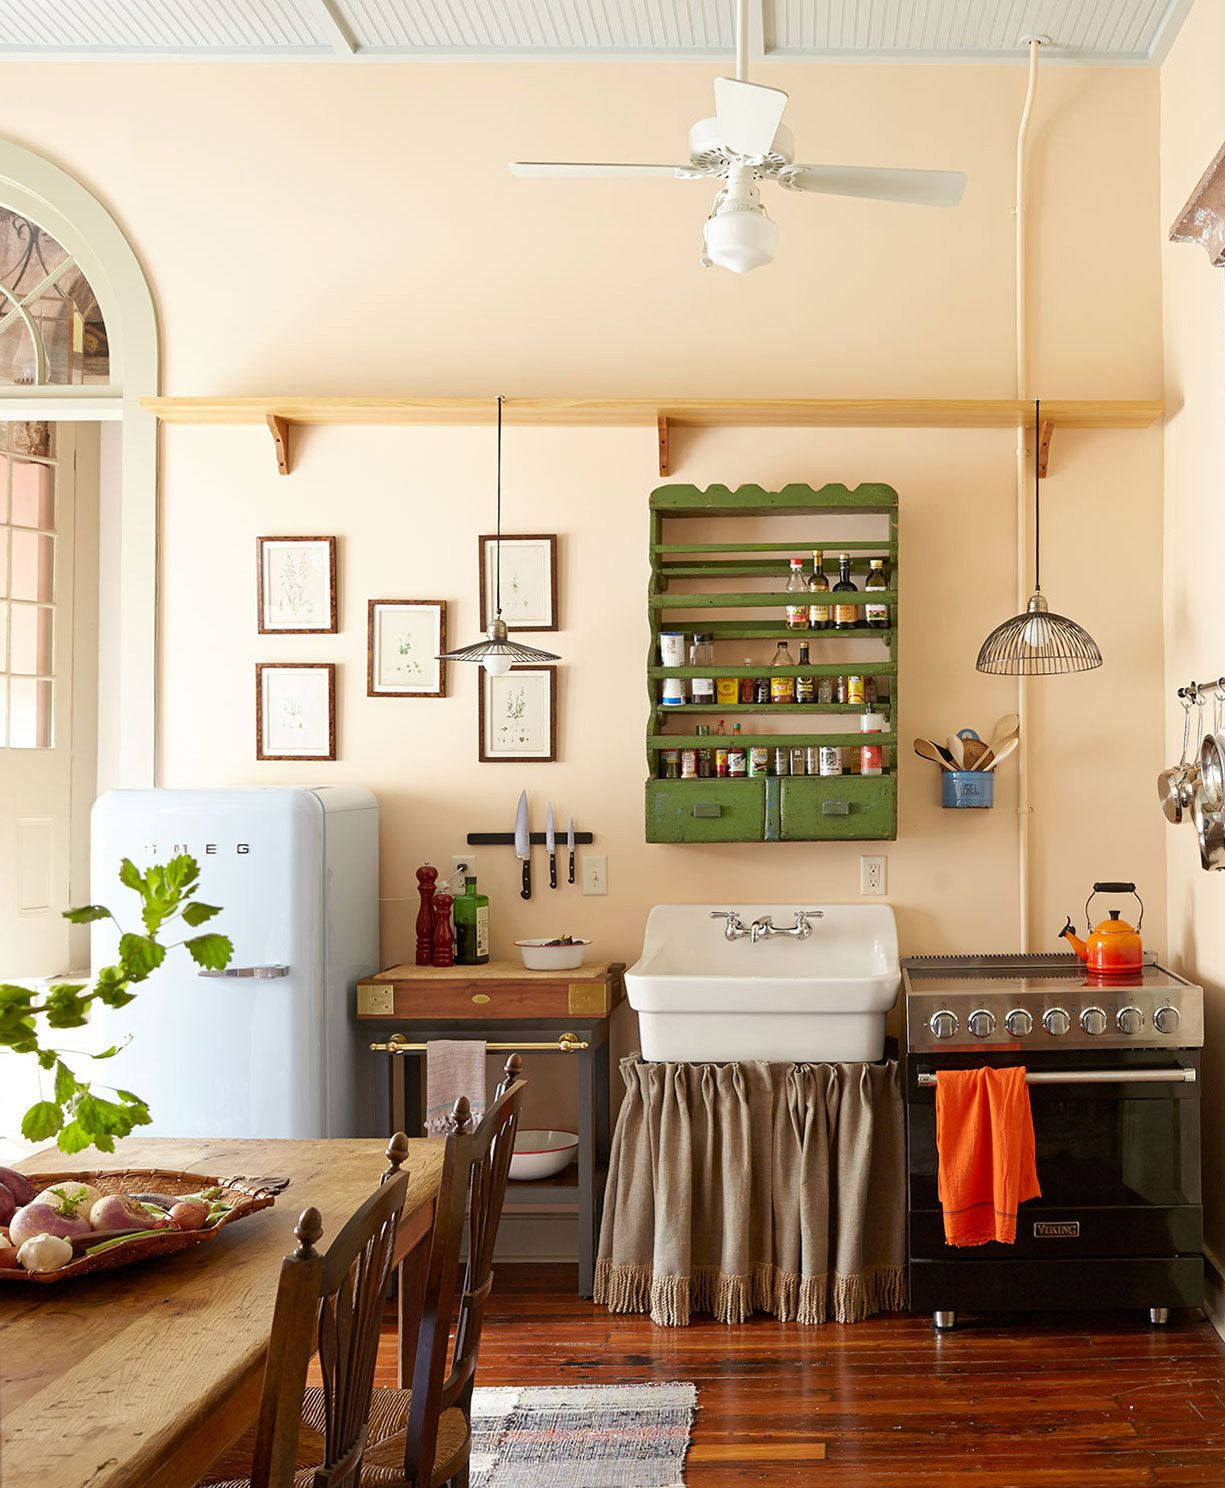 Rebirth in new orleans october contemporary kitchen